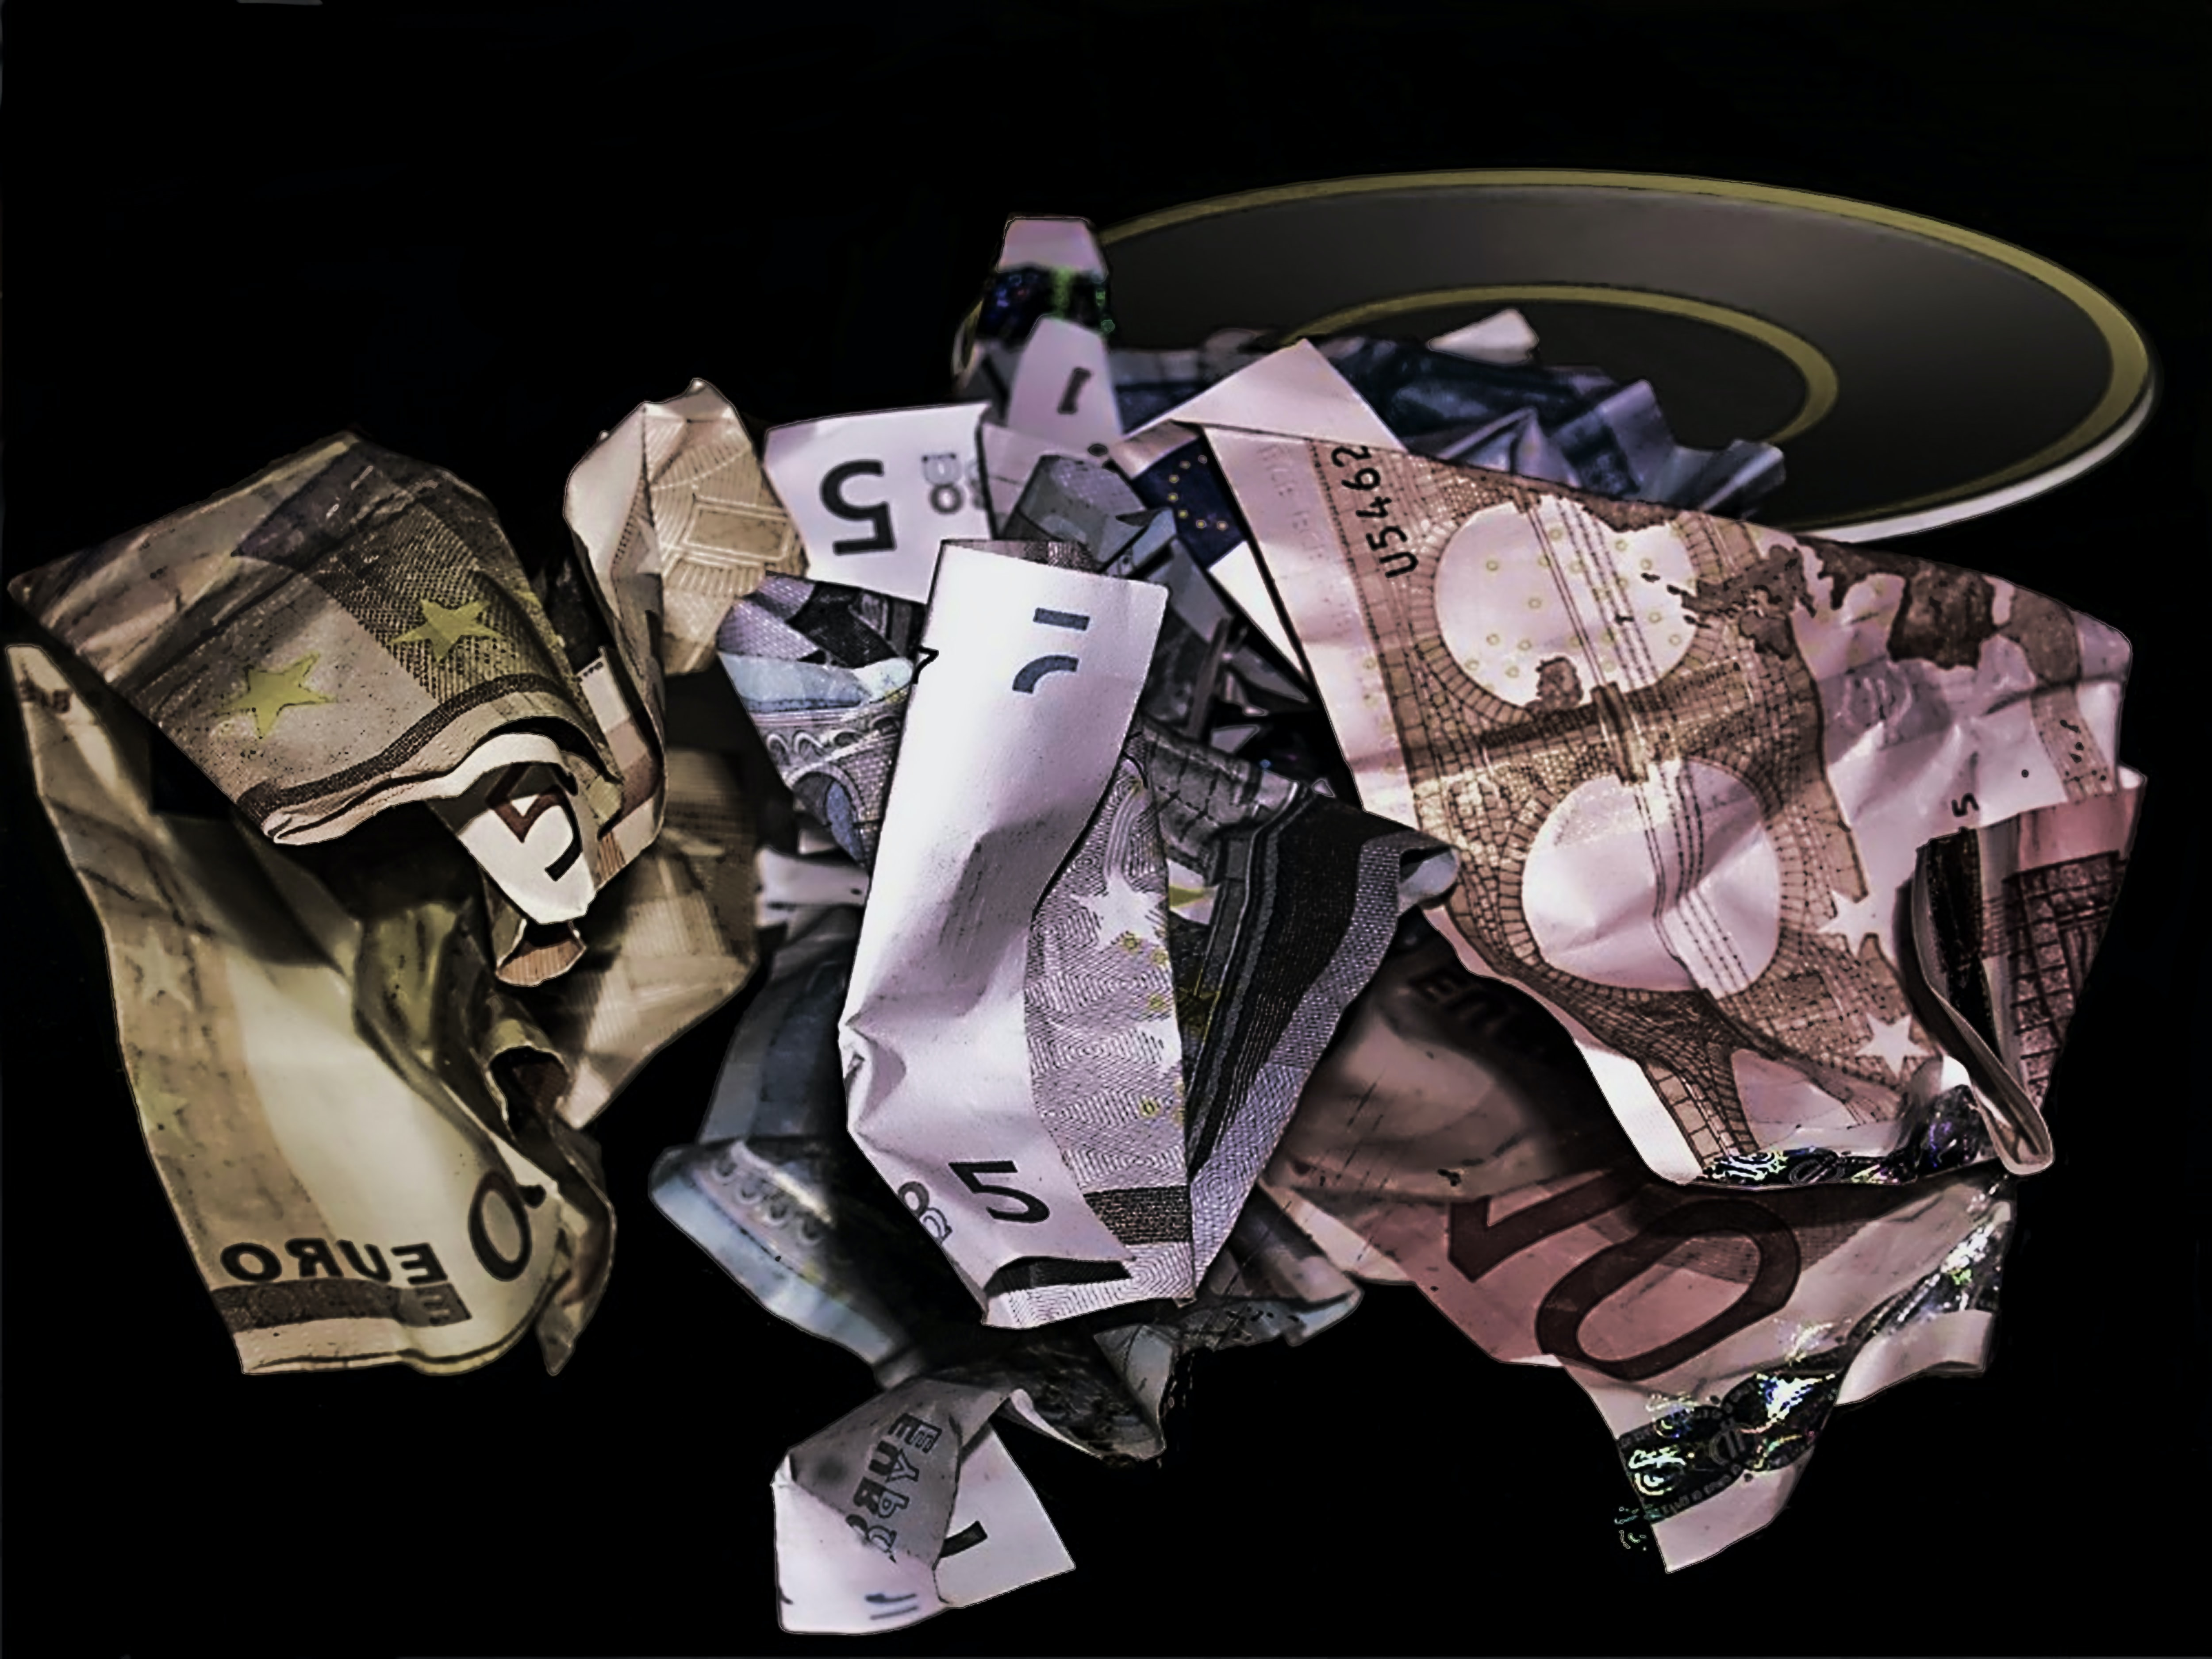 assorted banknotes